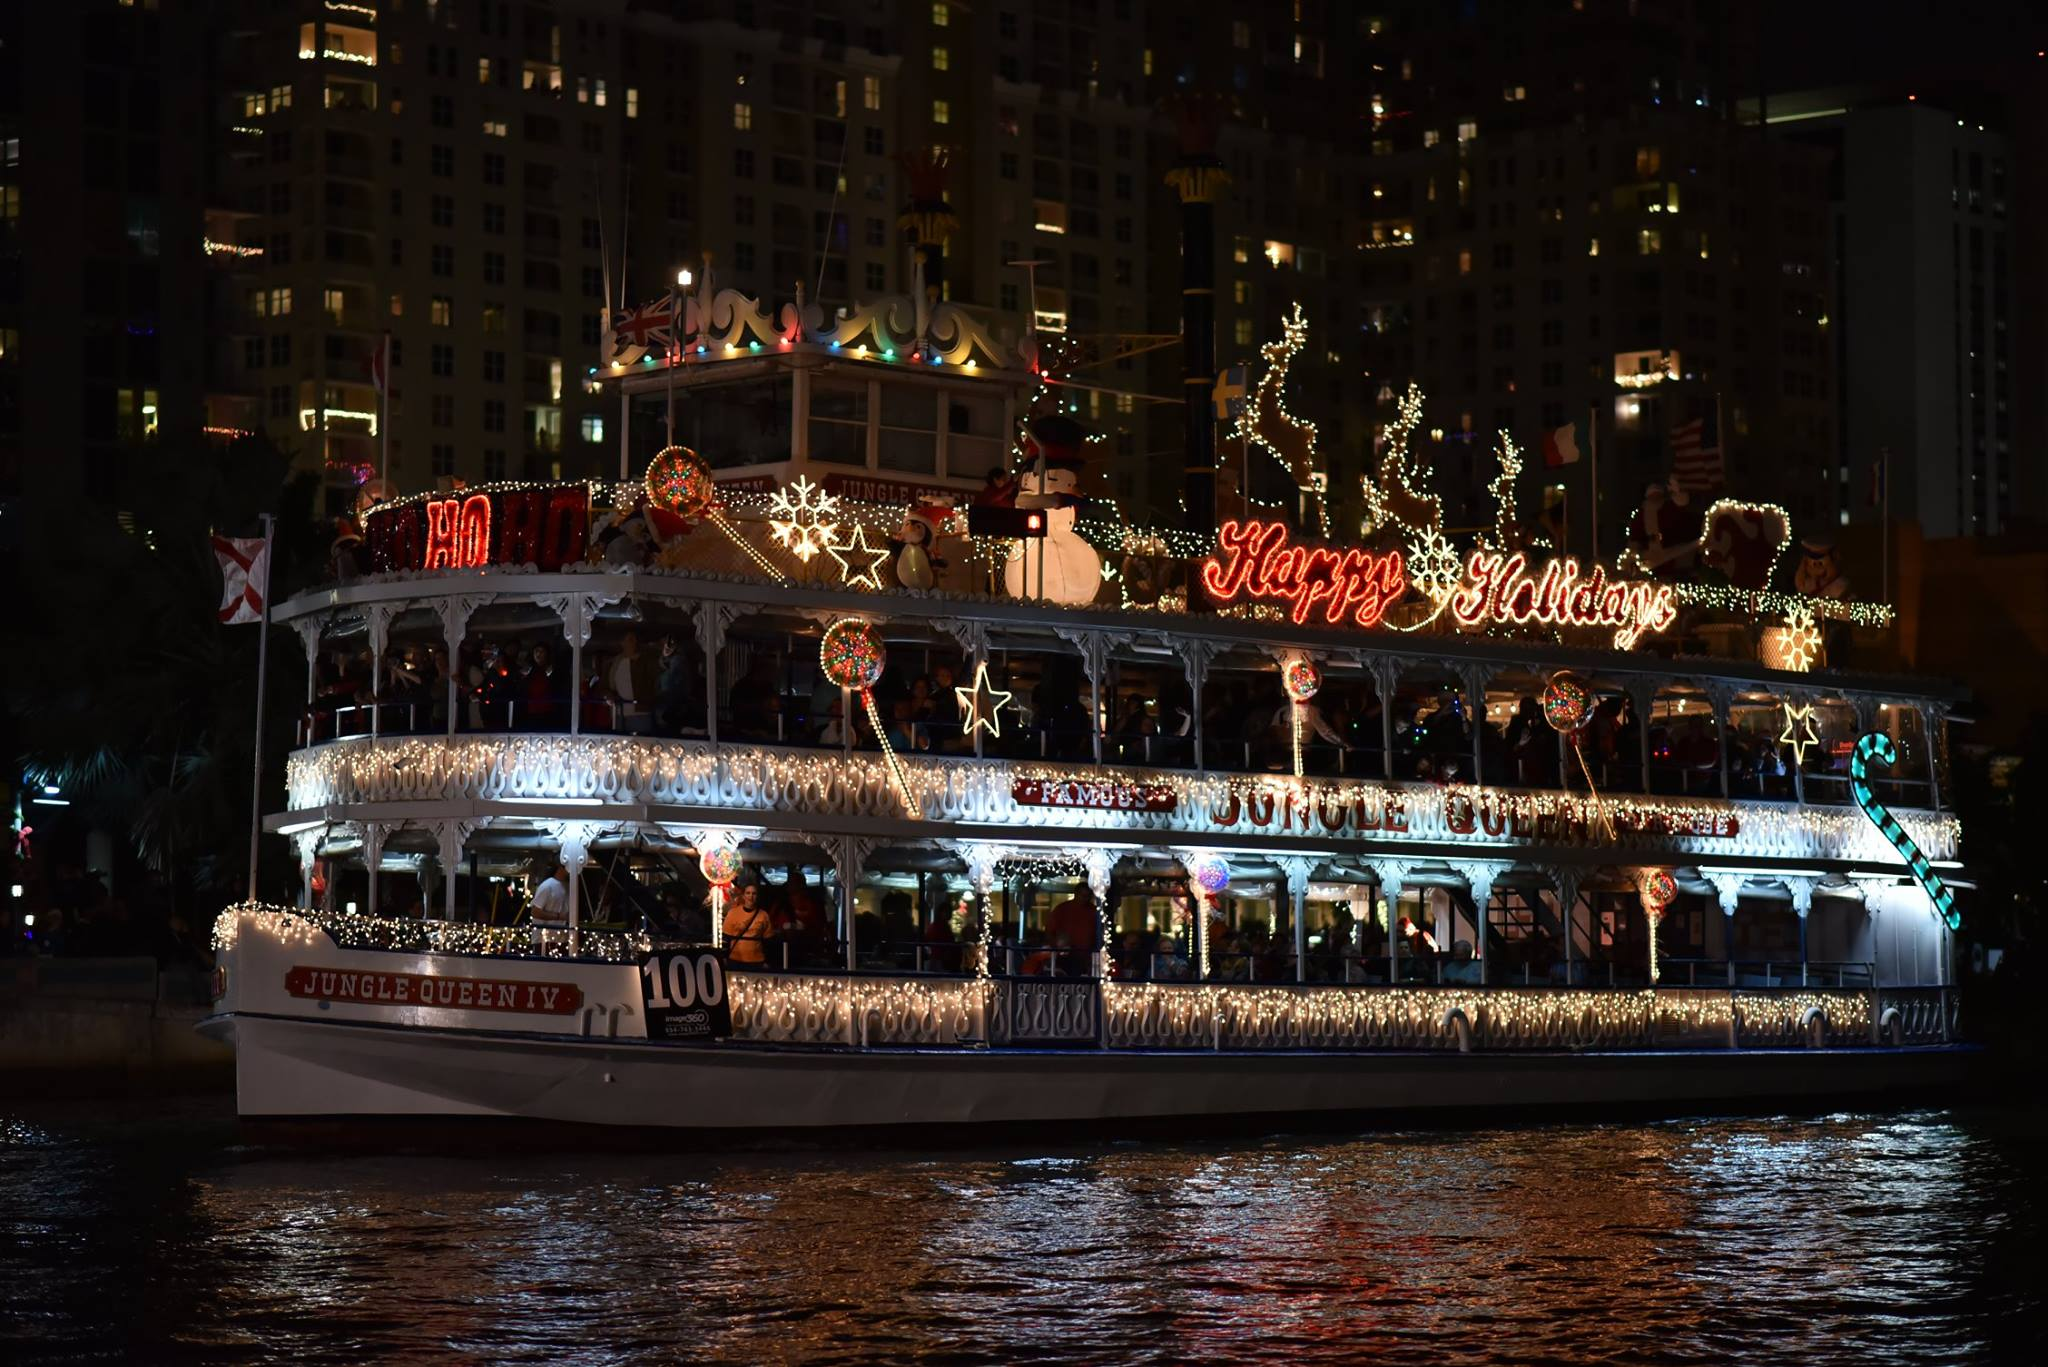 Fort Lauderdale Christmas Boat Parade.This Amazing Boat Parade Is The Perfect Way To Celebrate